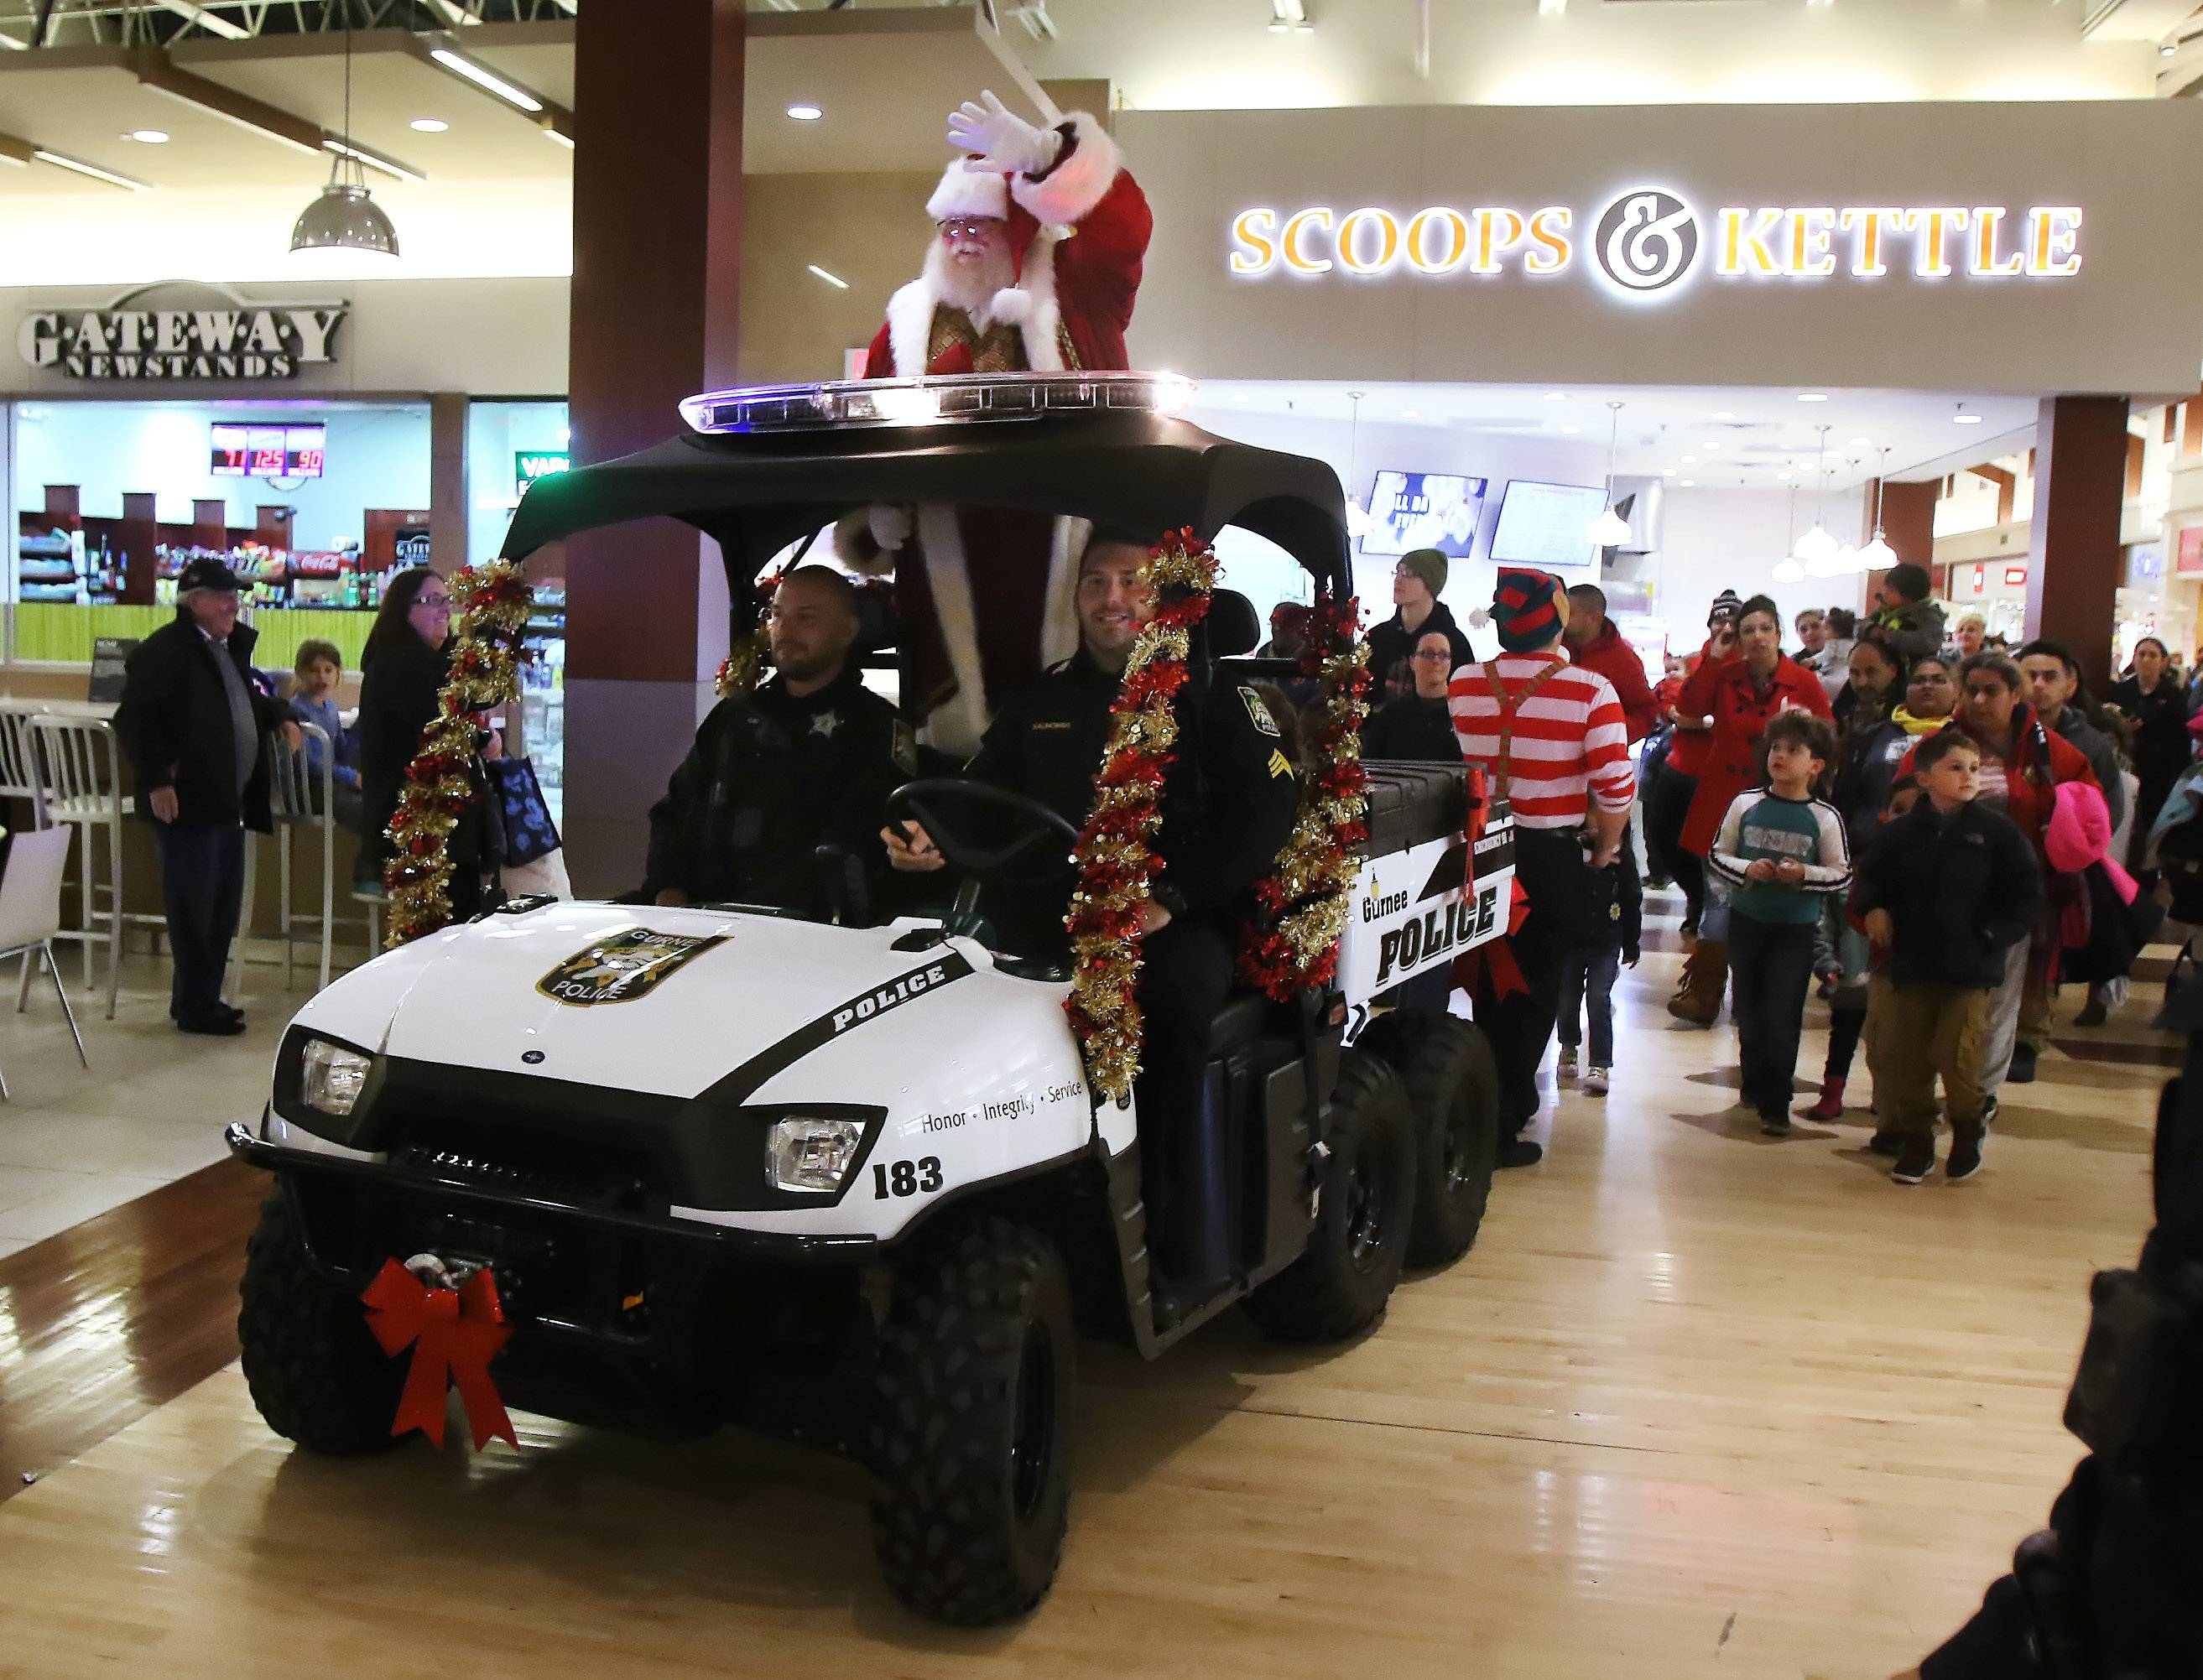 During Santa's Arrival Parade on Thursday evening at Gurnee Mills, Santa navigated through the mall in a police ATV followed by a throng of children and their parents.